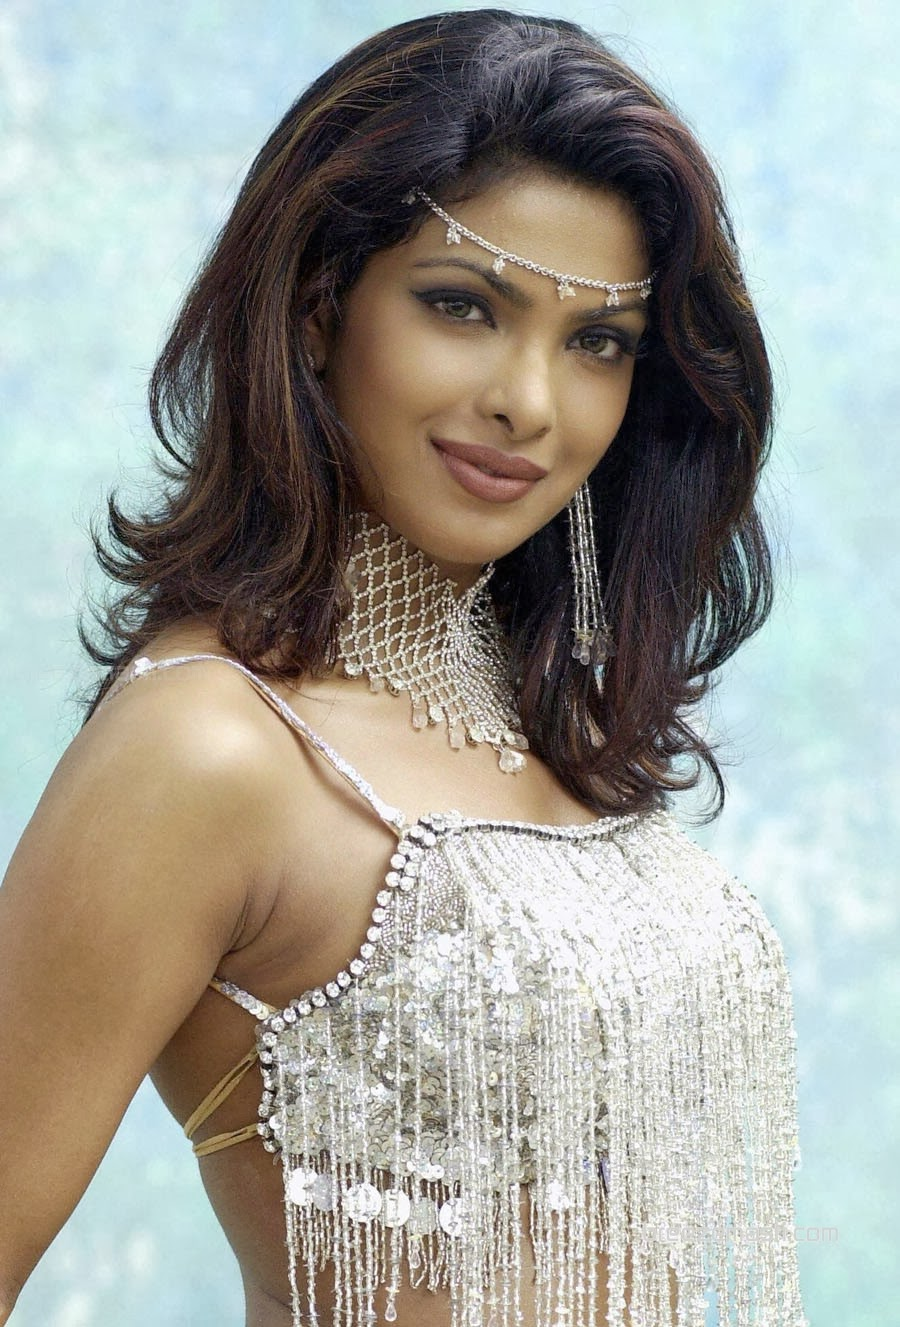 Priyanka Chopra Biography And Latest Pictures 2013  World -5086